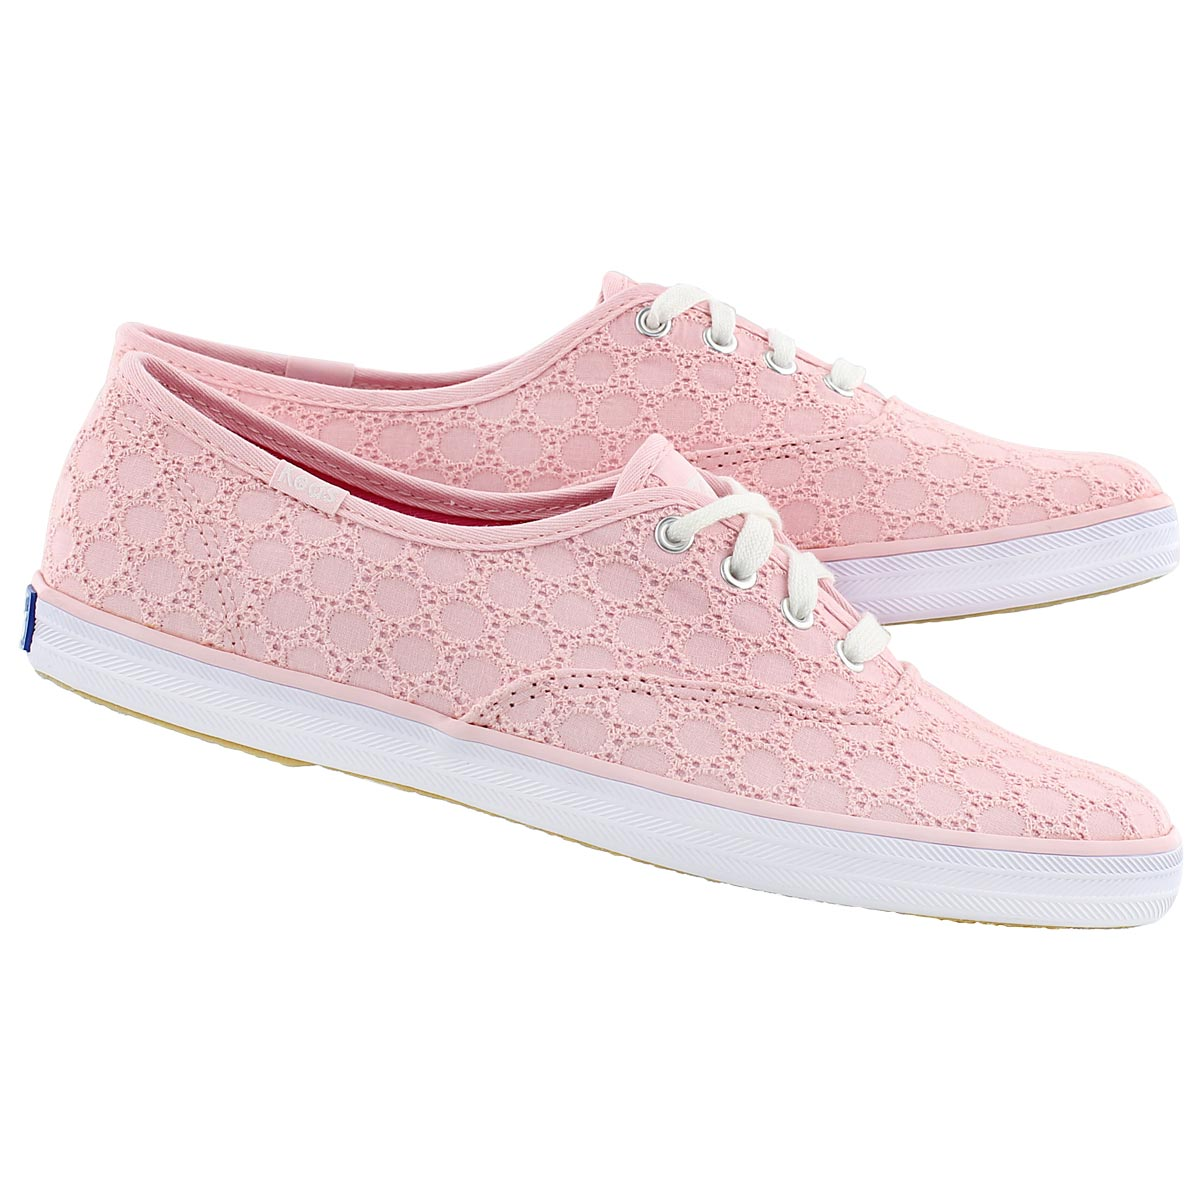 keds s chion eyelet light pink sneakers